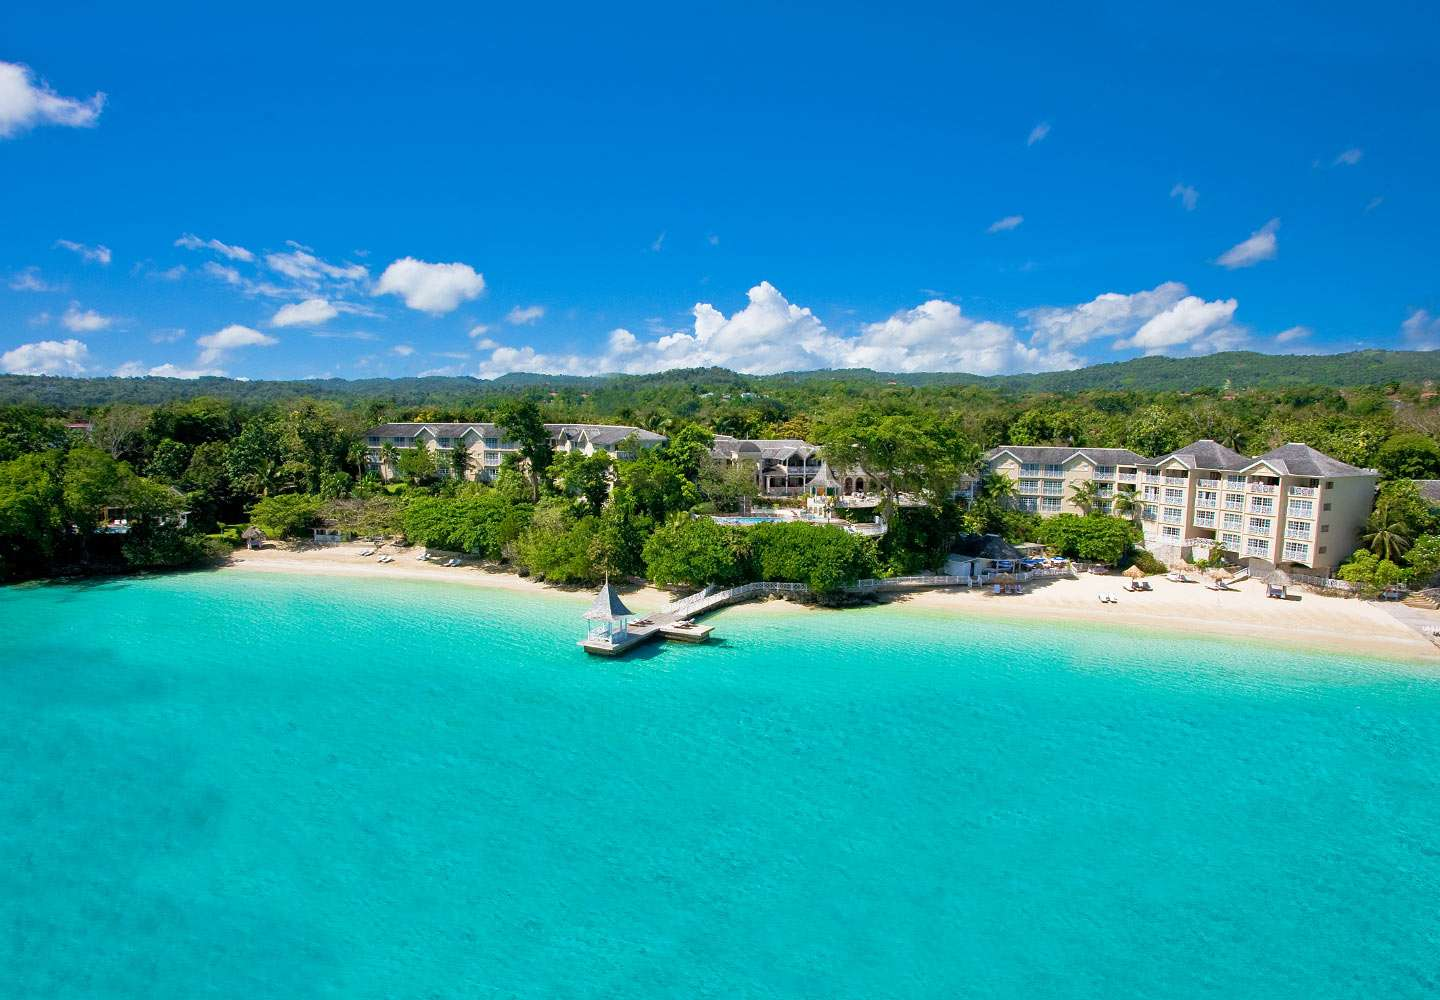 Image of Sandals Royal Plantation, Saint Ann, Jamaica